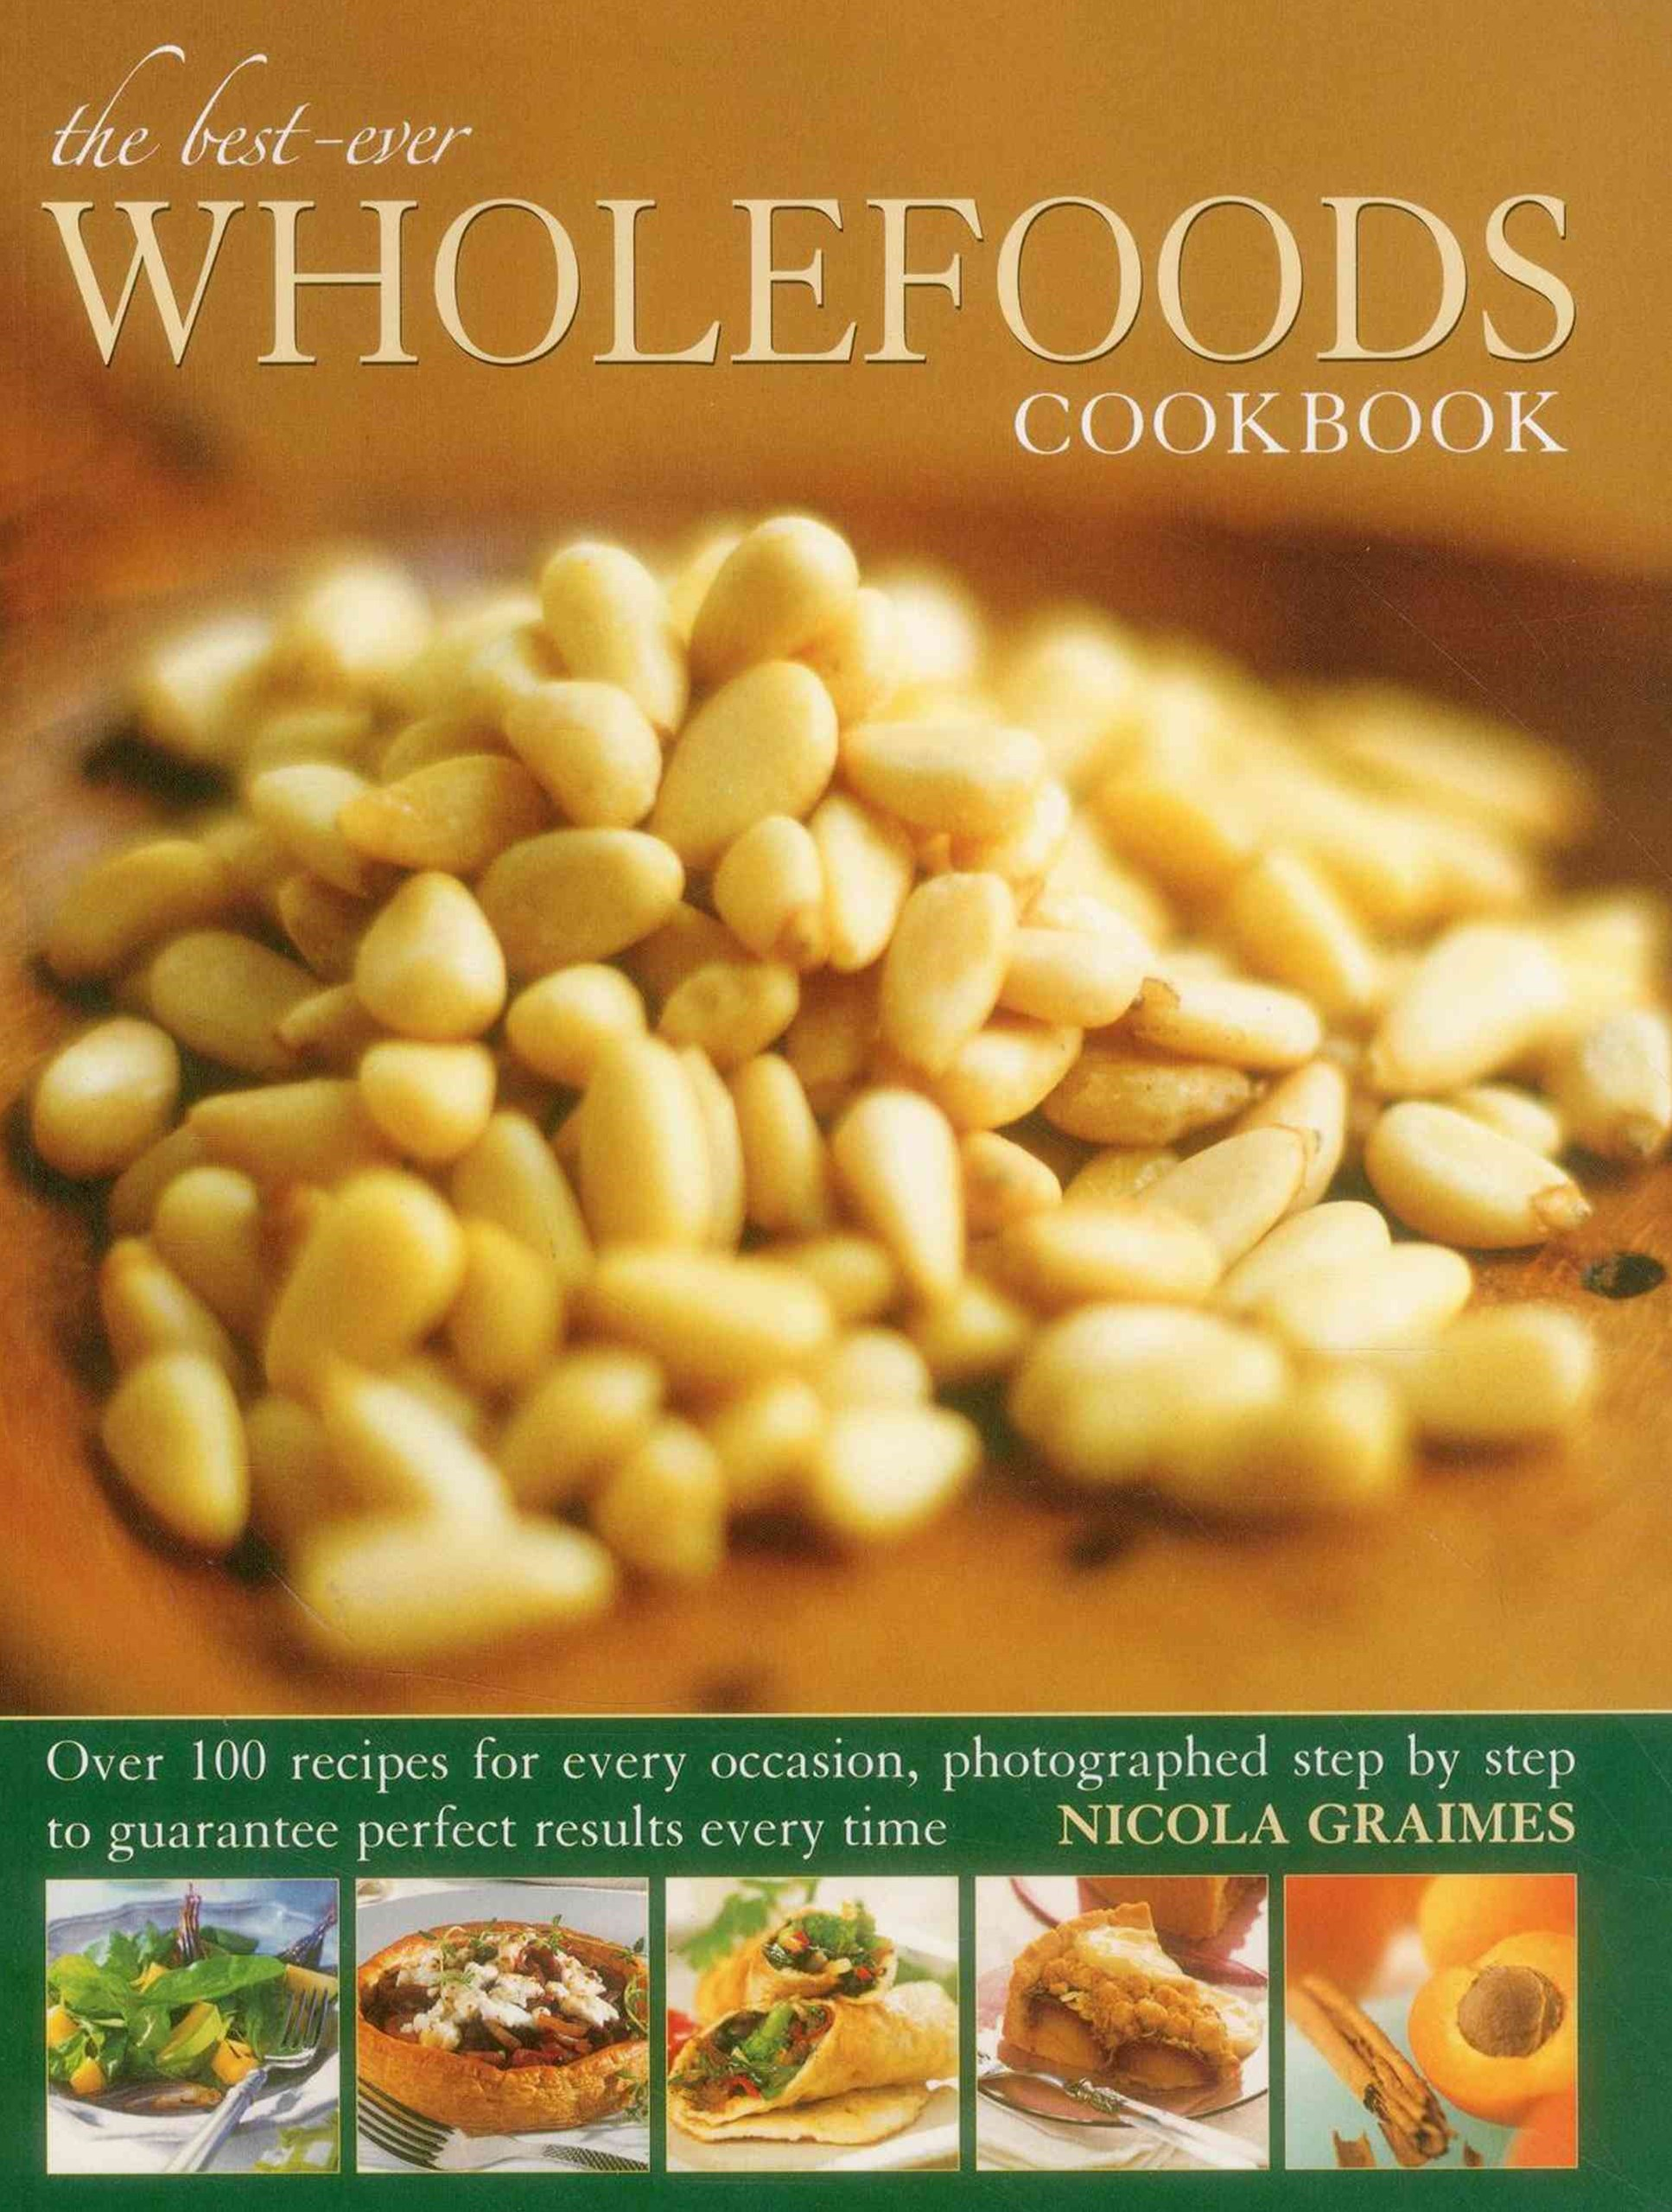 Best Ever Wholefoods Cookbook